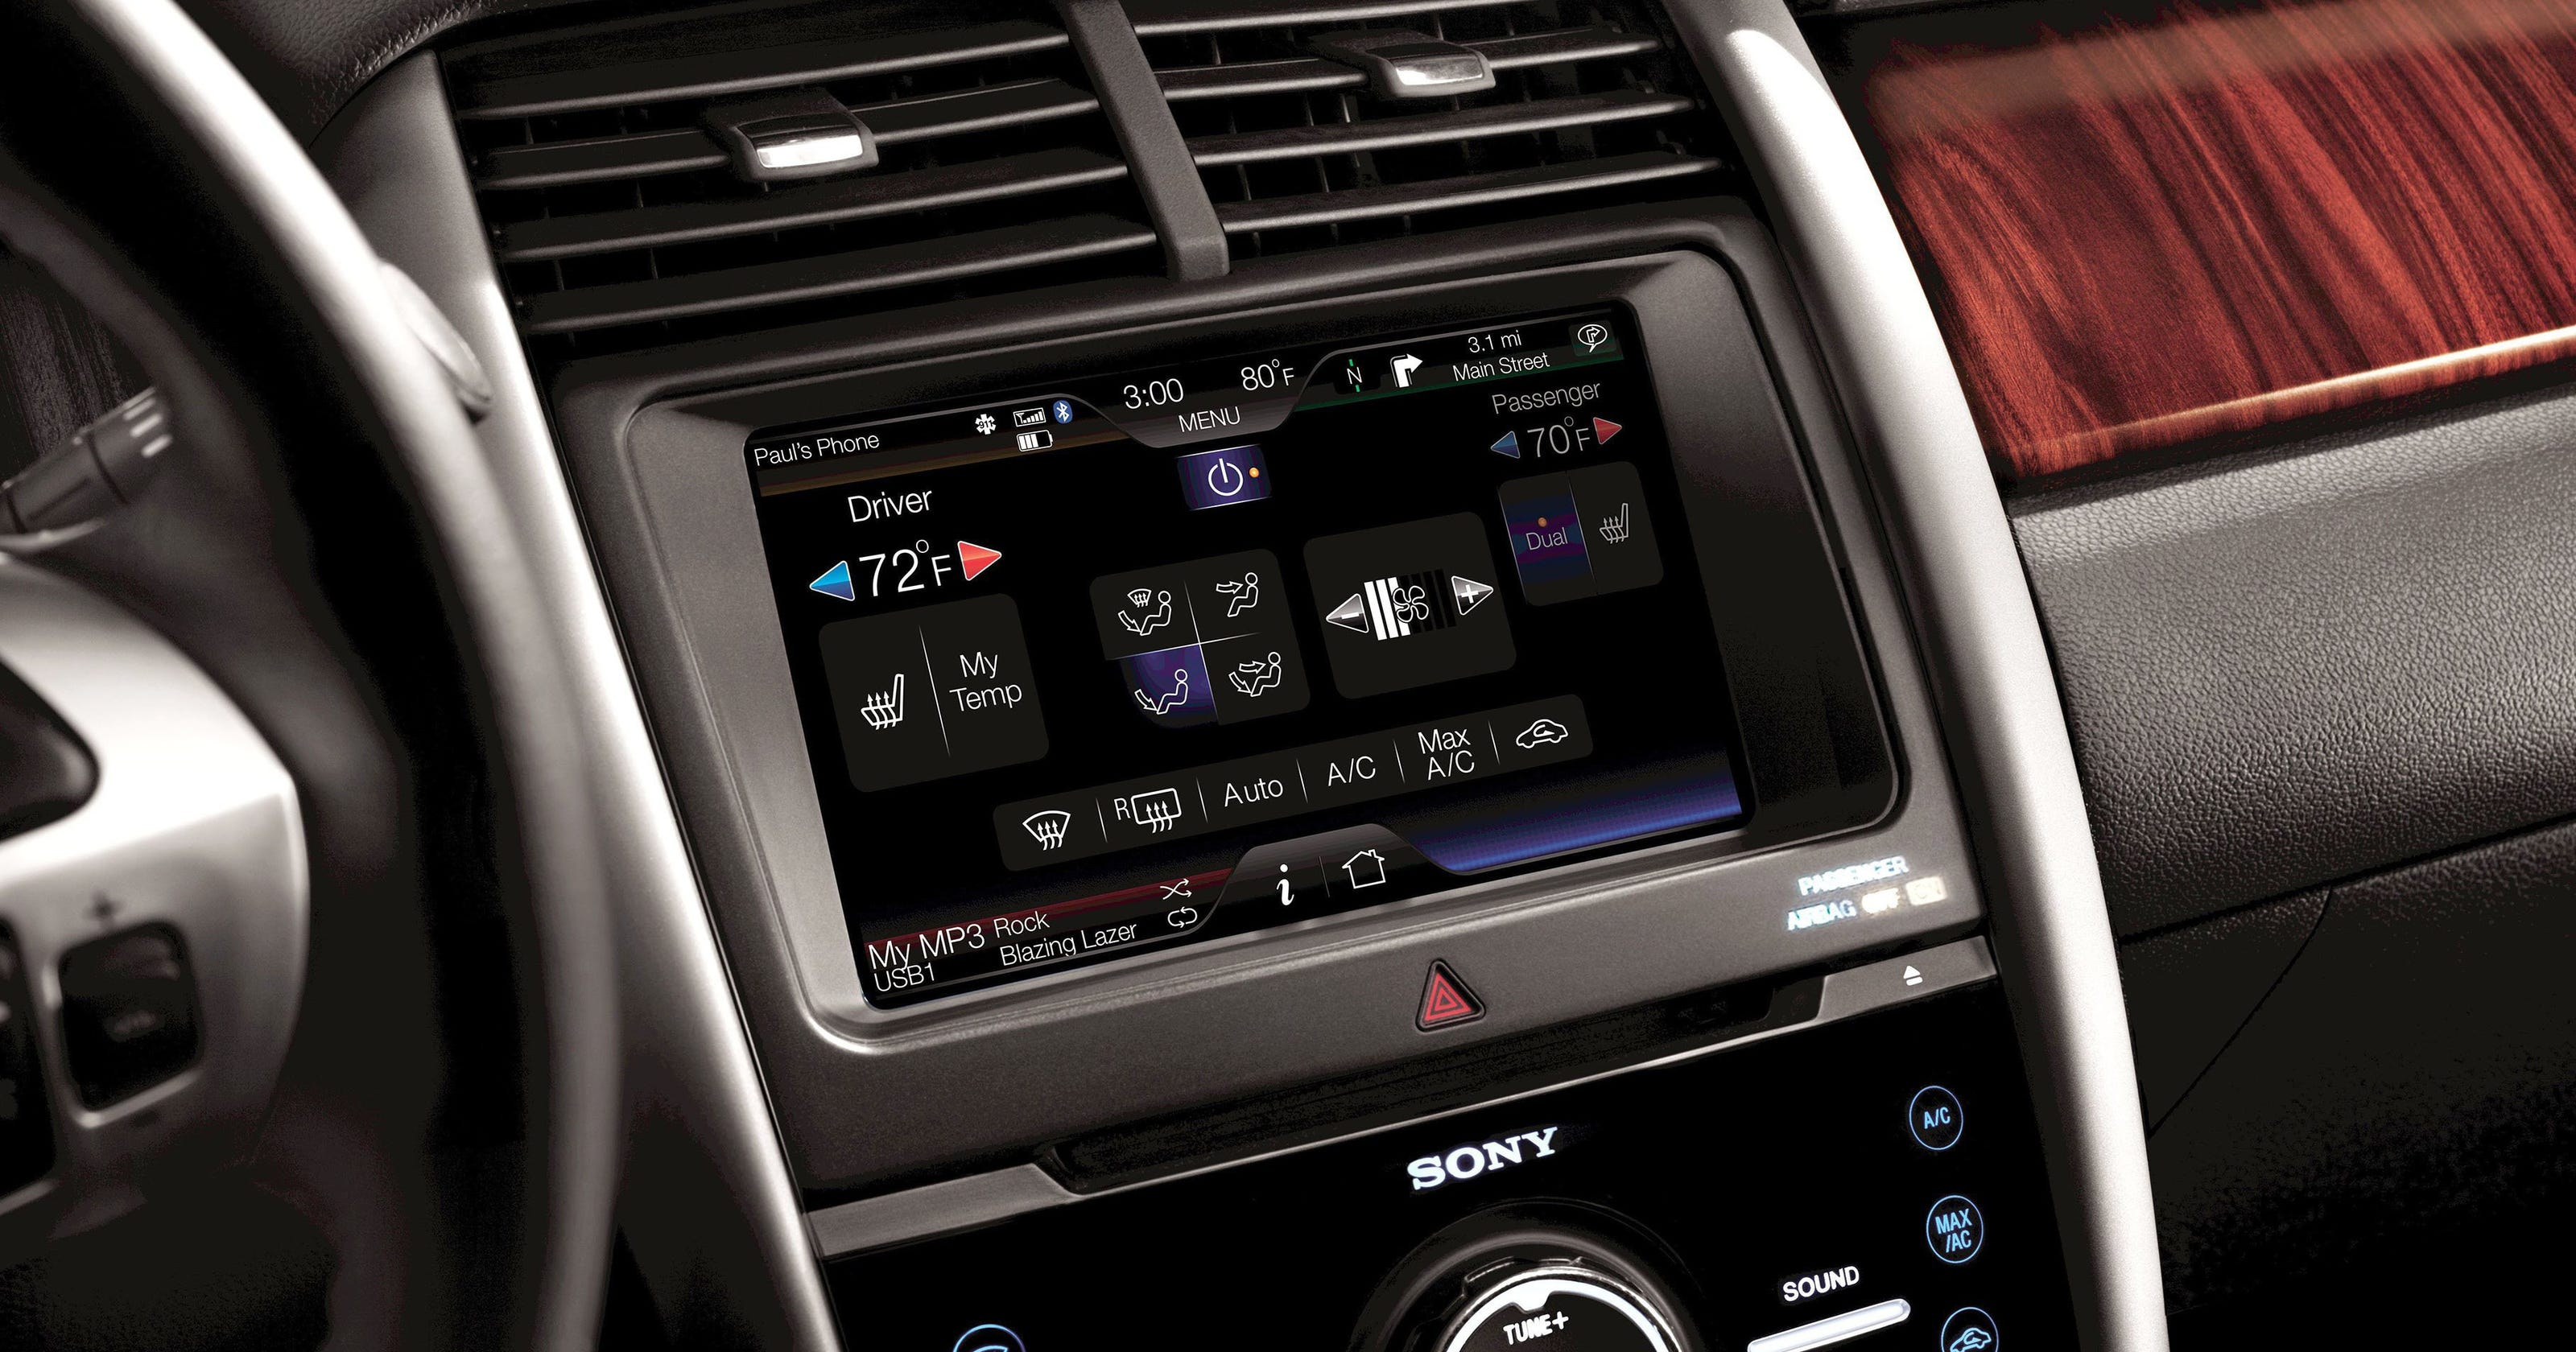 Ford adds Apple's Siri to older vehicles with Sync